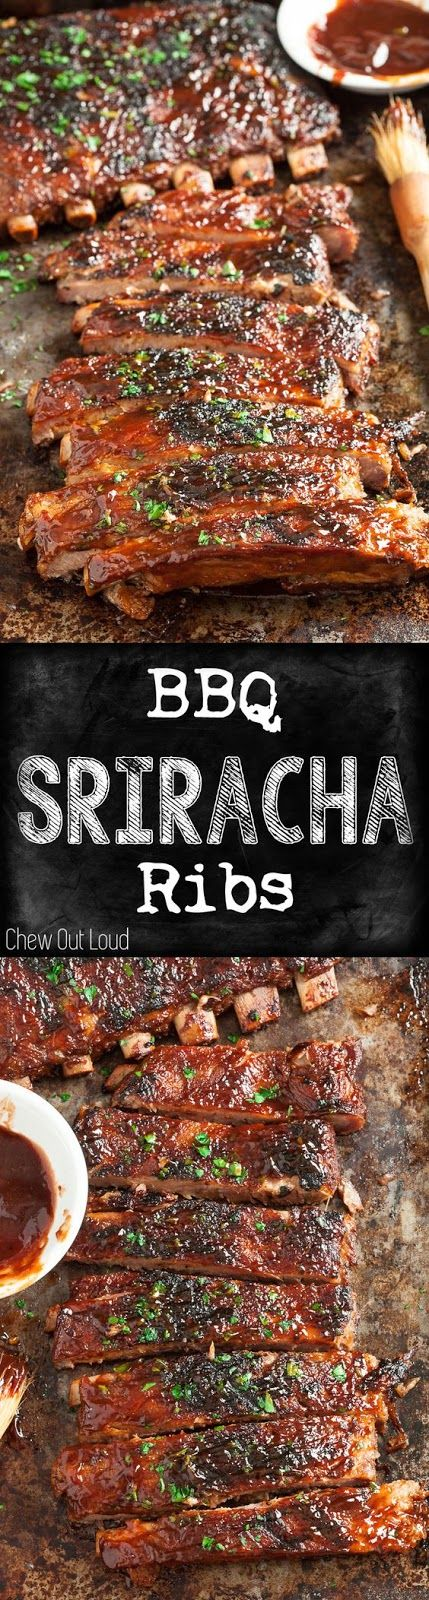 BBQ SRIRACHA RIBS | Food And Cake Recipes